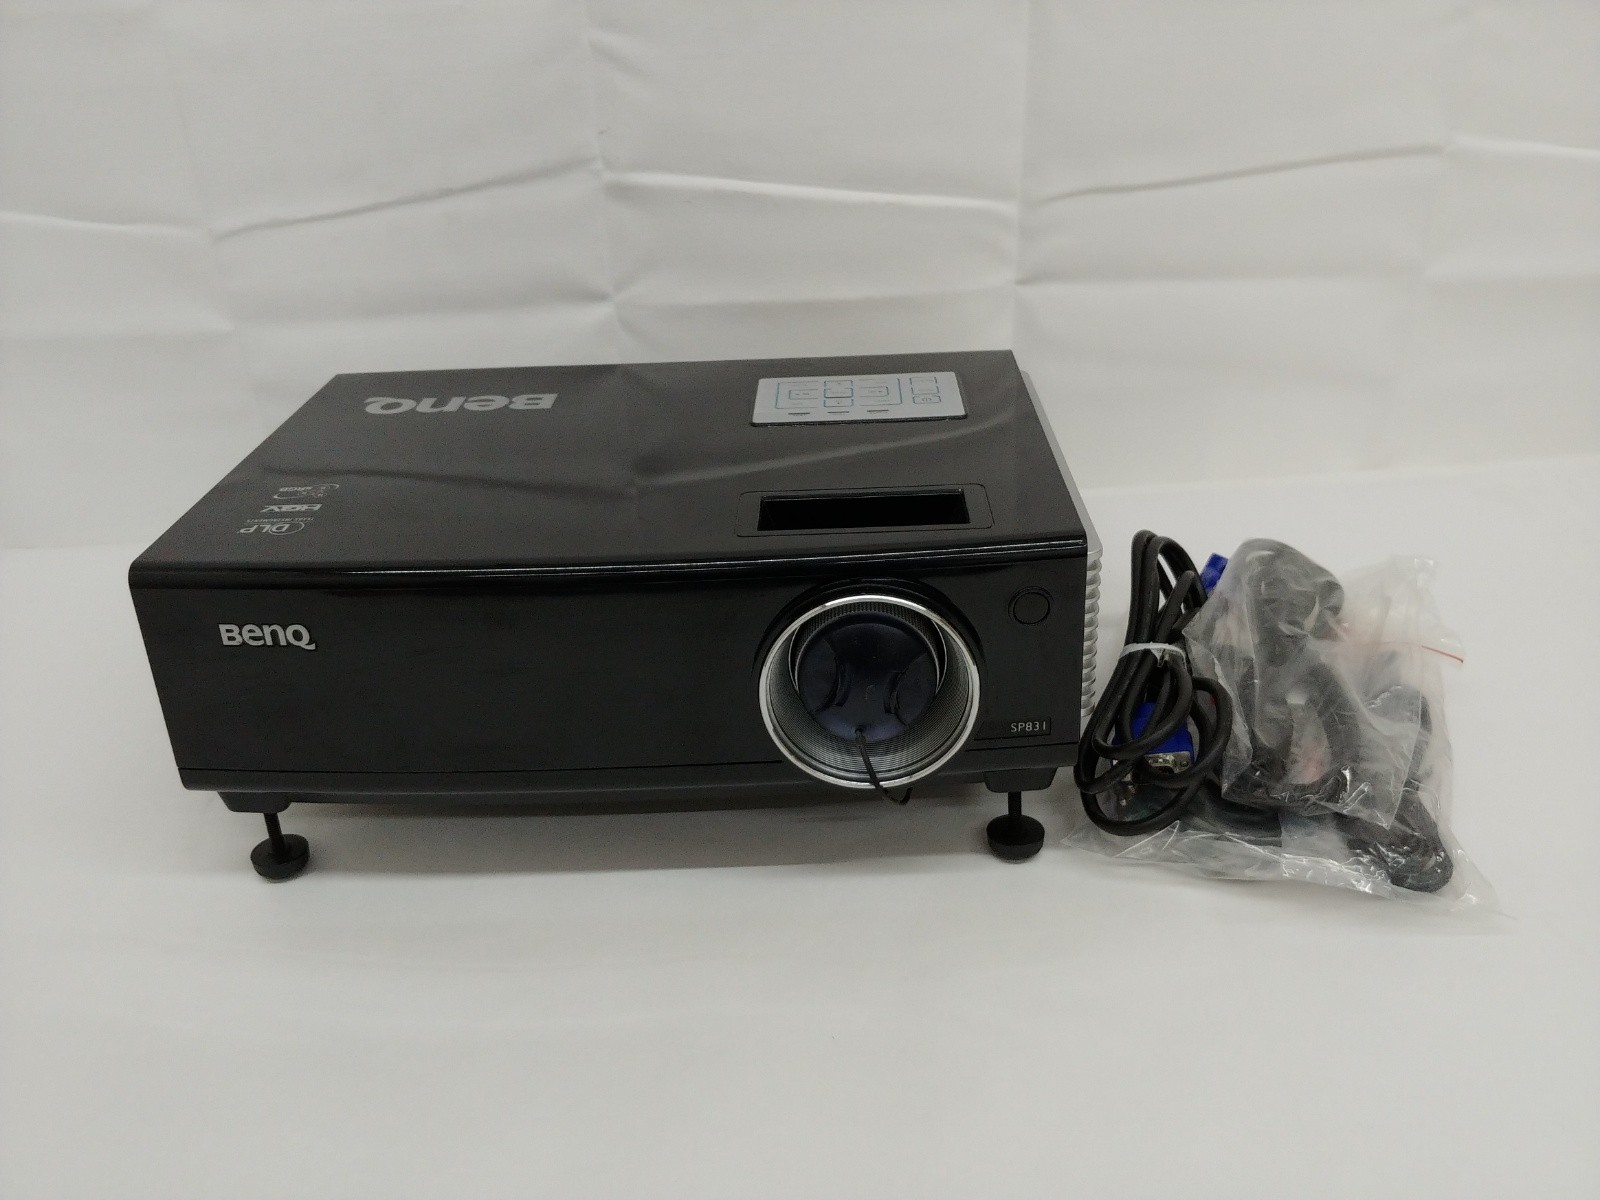 BenQ SP831 4,000 lumen DLP Data Projector 748 Hrs